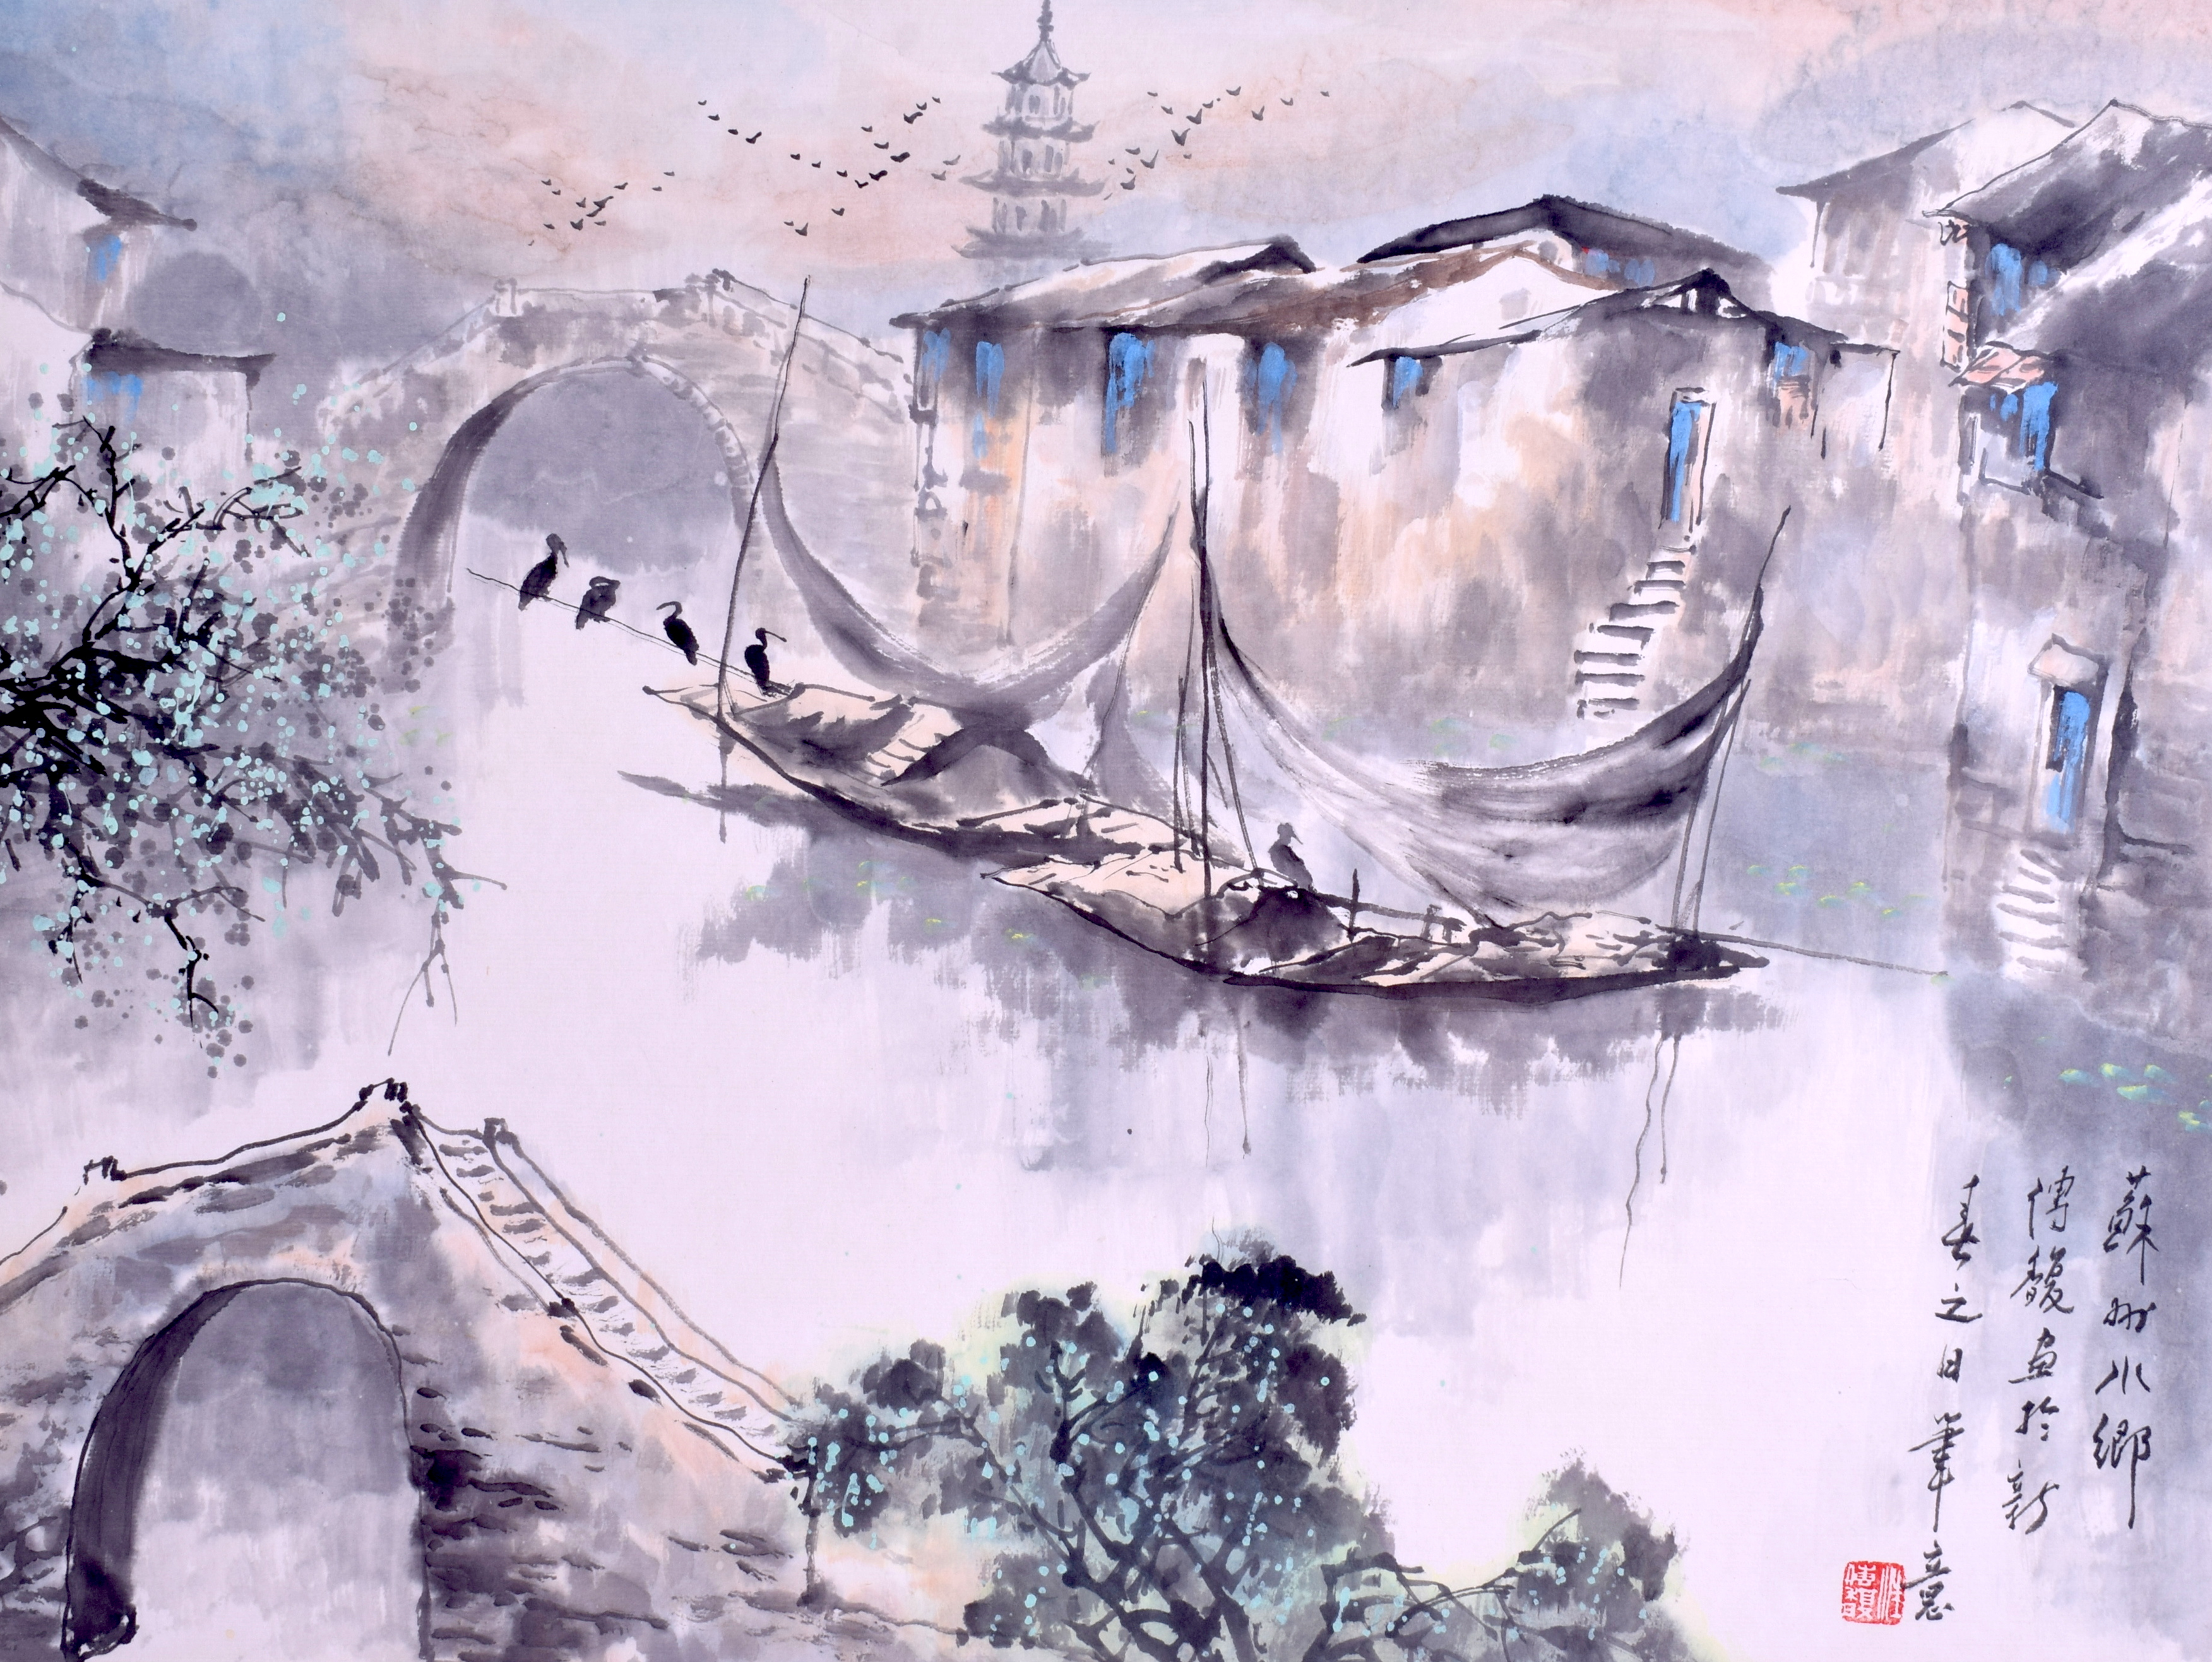 Lot 1324 - A CHINESE FRAMED WATERCOLOUR 20th CENTURY, Boat upon a river. Image 45 cm x 36 cm.